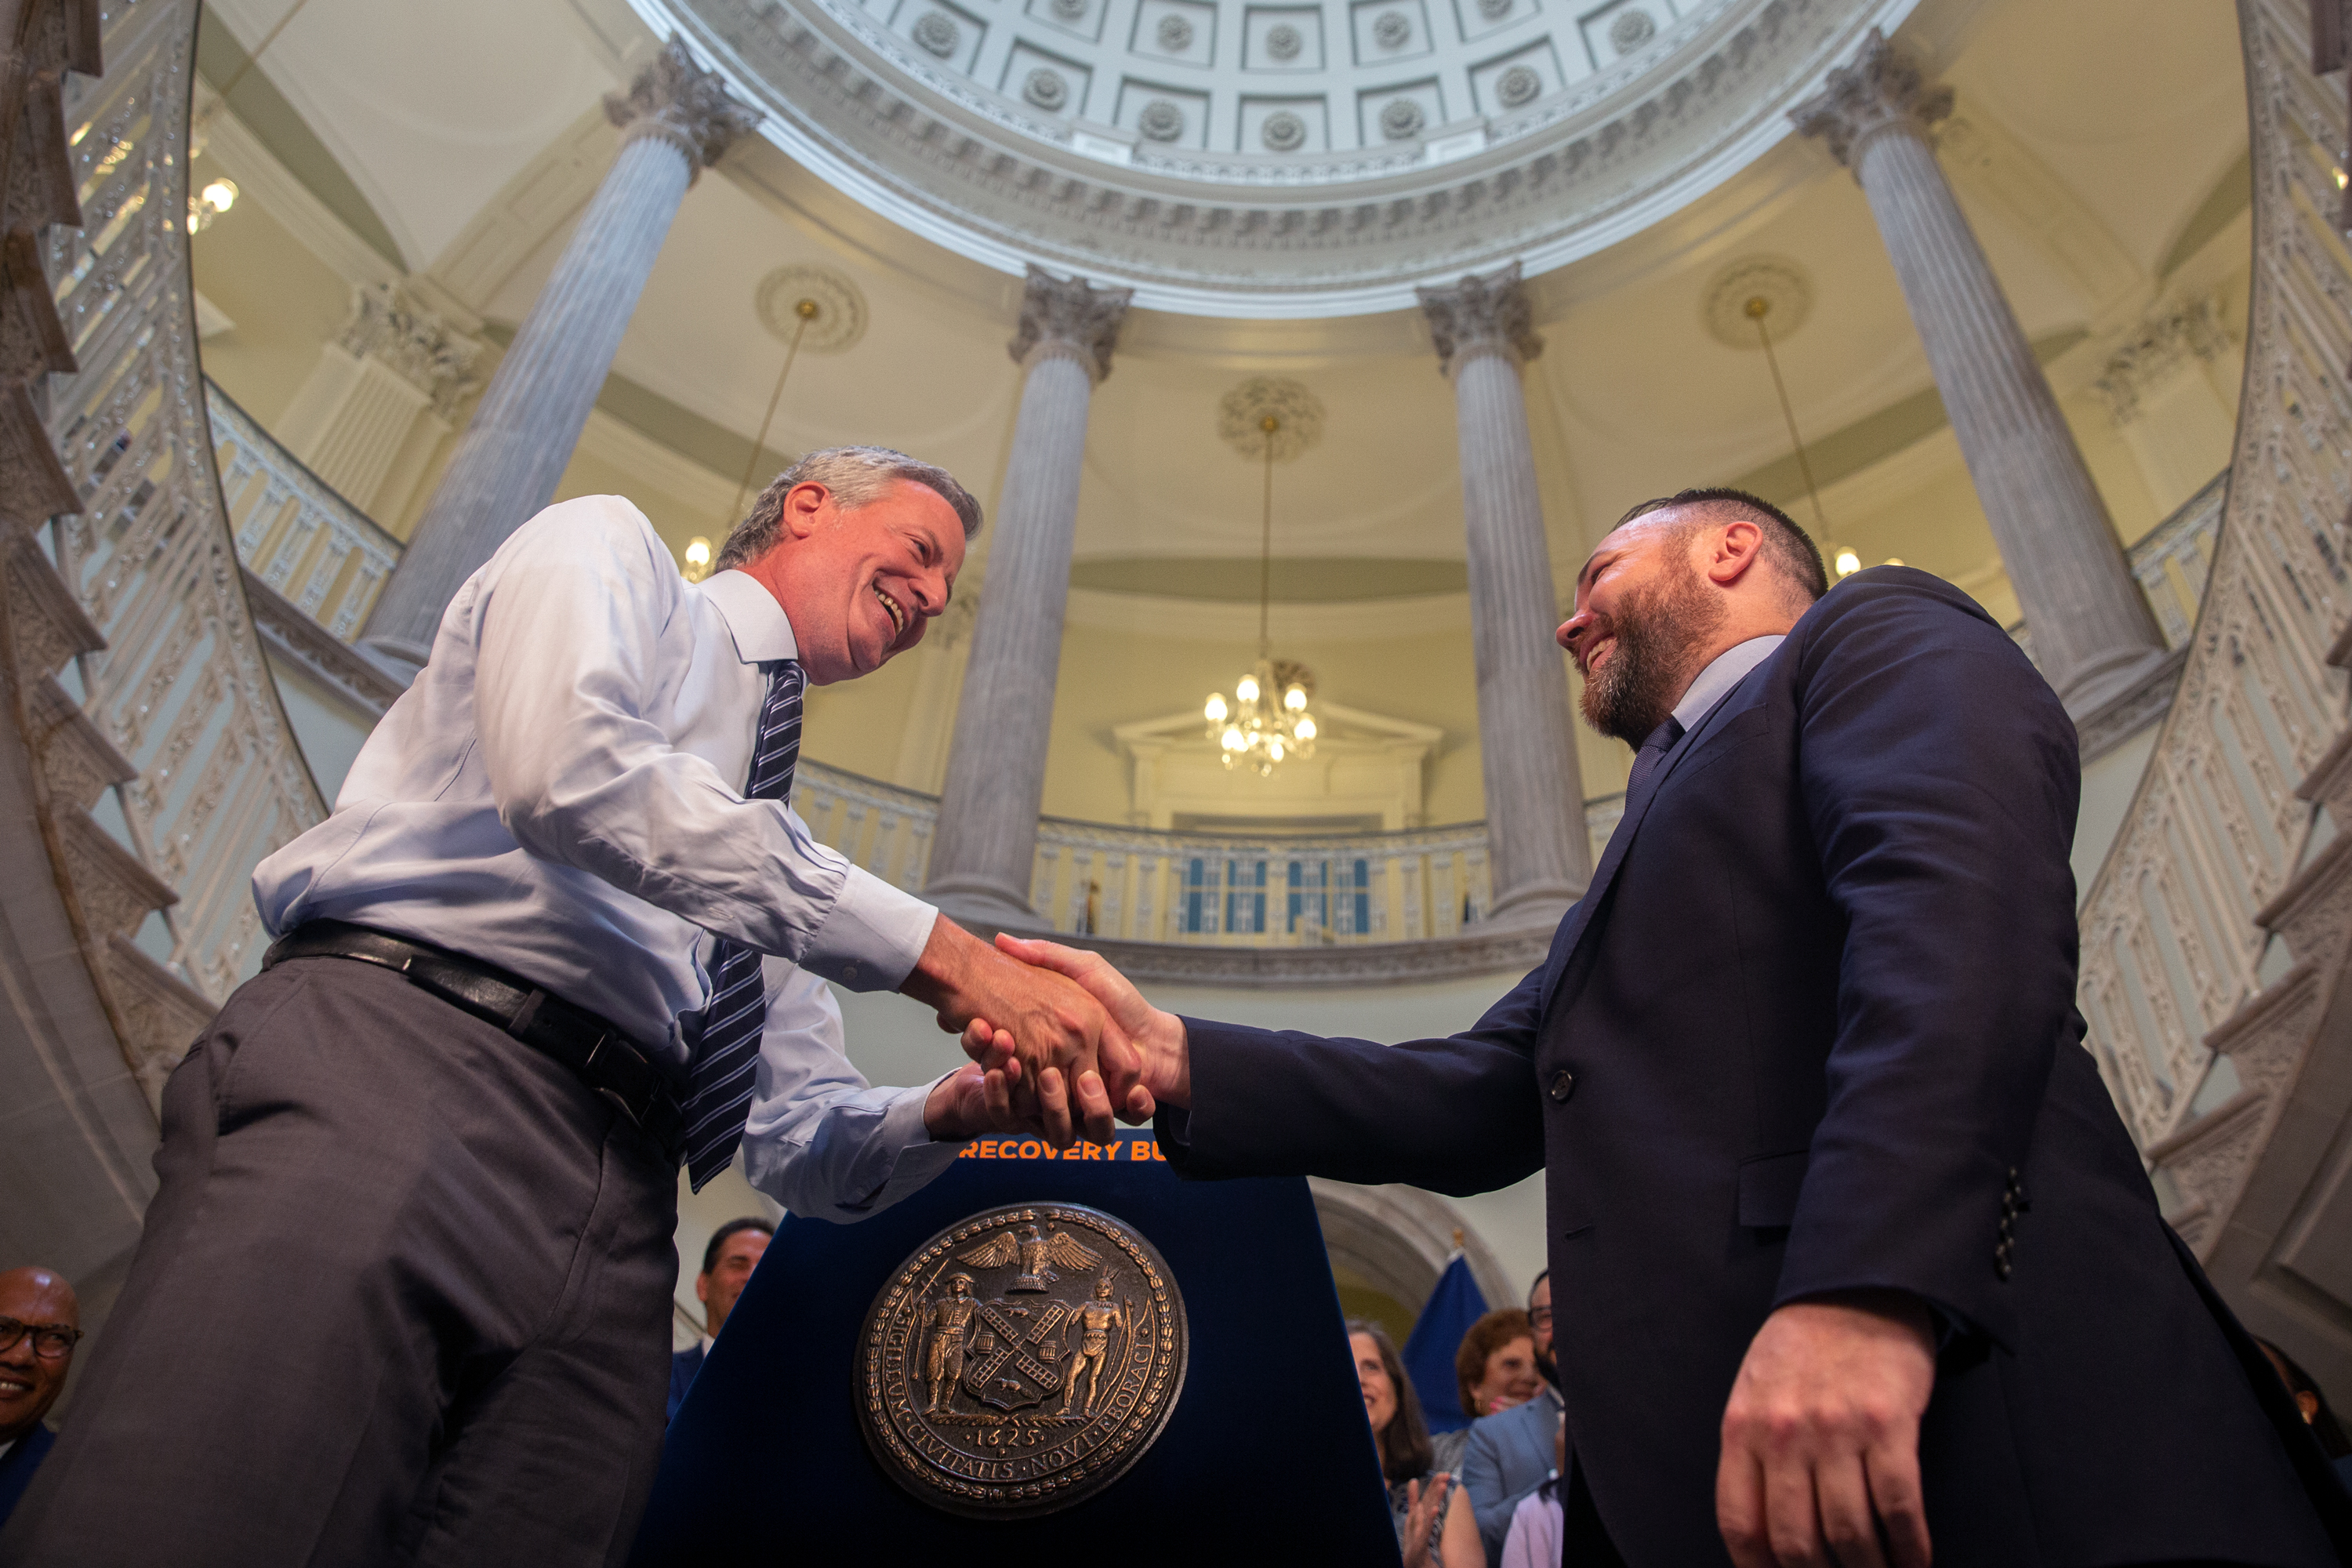 Mayor Bill de Blasio and Council Speaker Corey Johnson shake hands at City Hall on a budget deal, June 30, 2021.